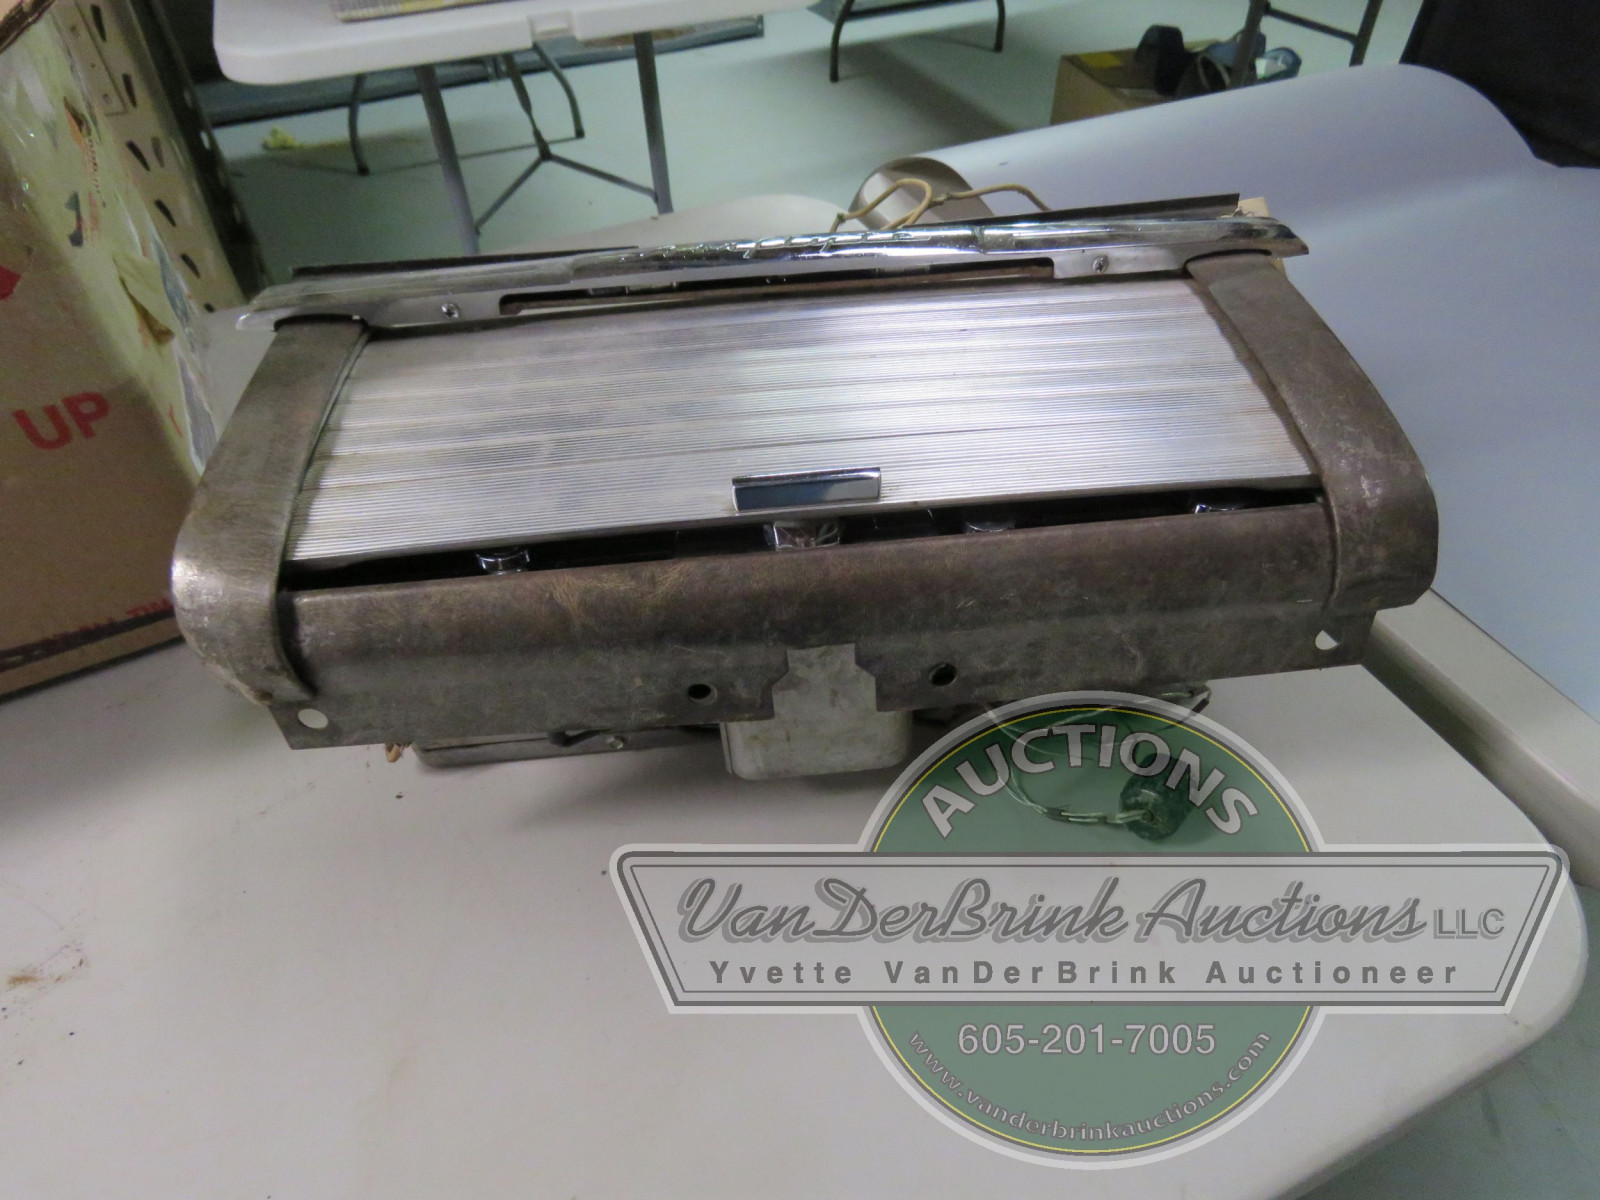 RARE NASH GLOVE BOX WITH HIDEAWAY RADIO - Image 2